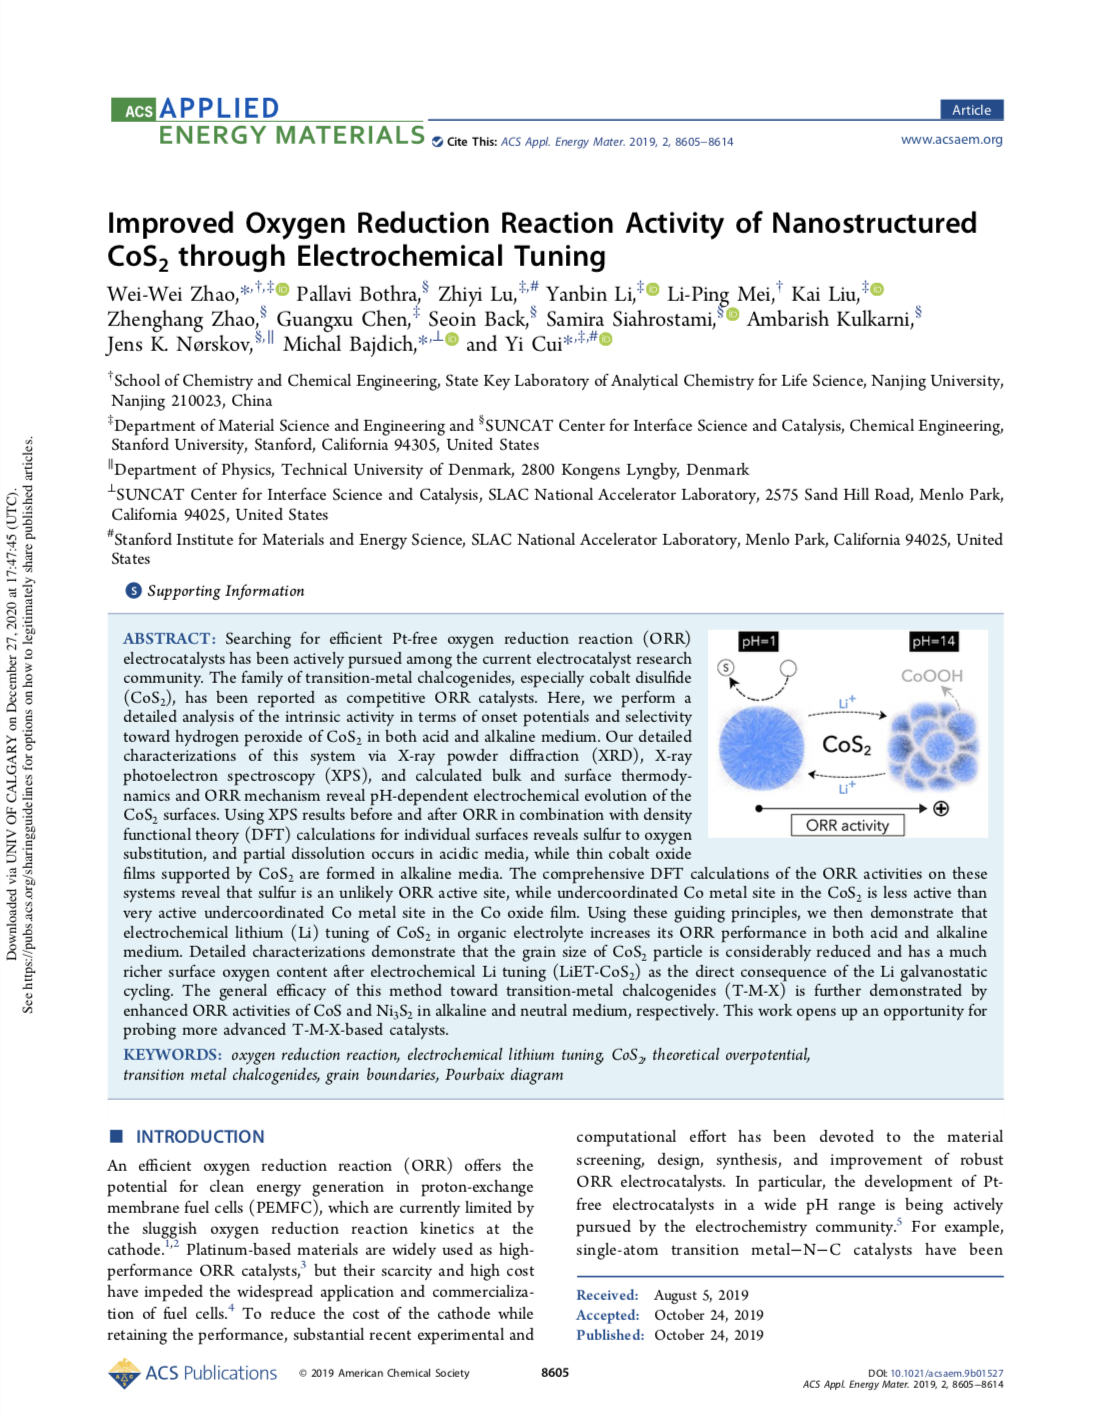 Improved Oxygen Reduction Reaction Activity of Nanostructured CoS2 through Electrochemical Tuning